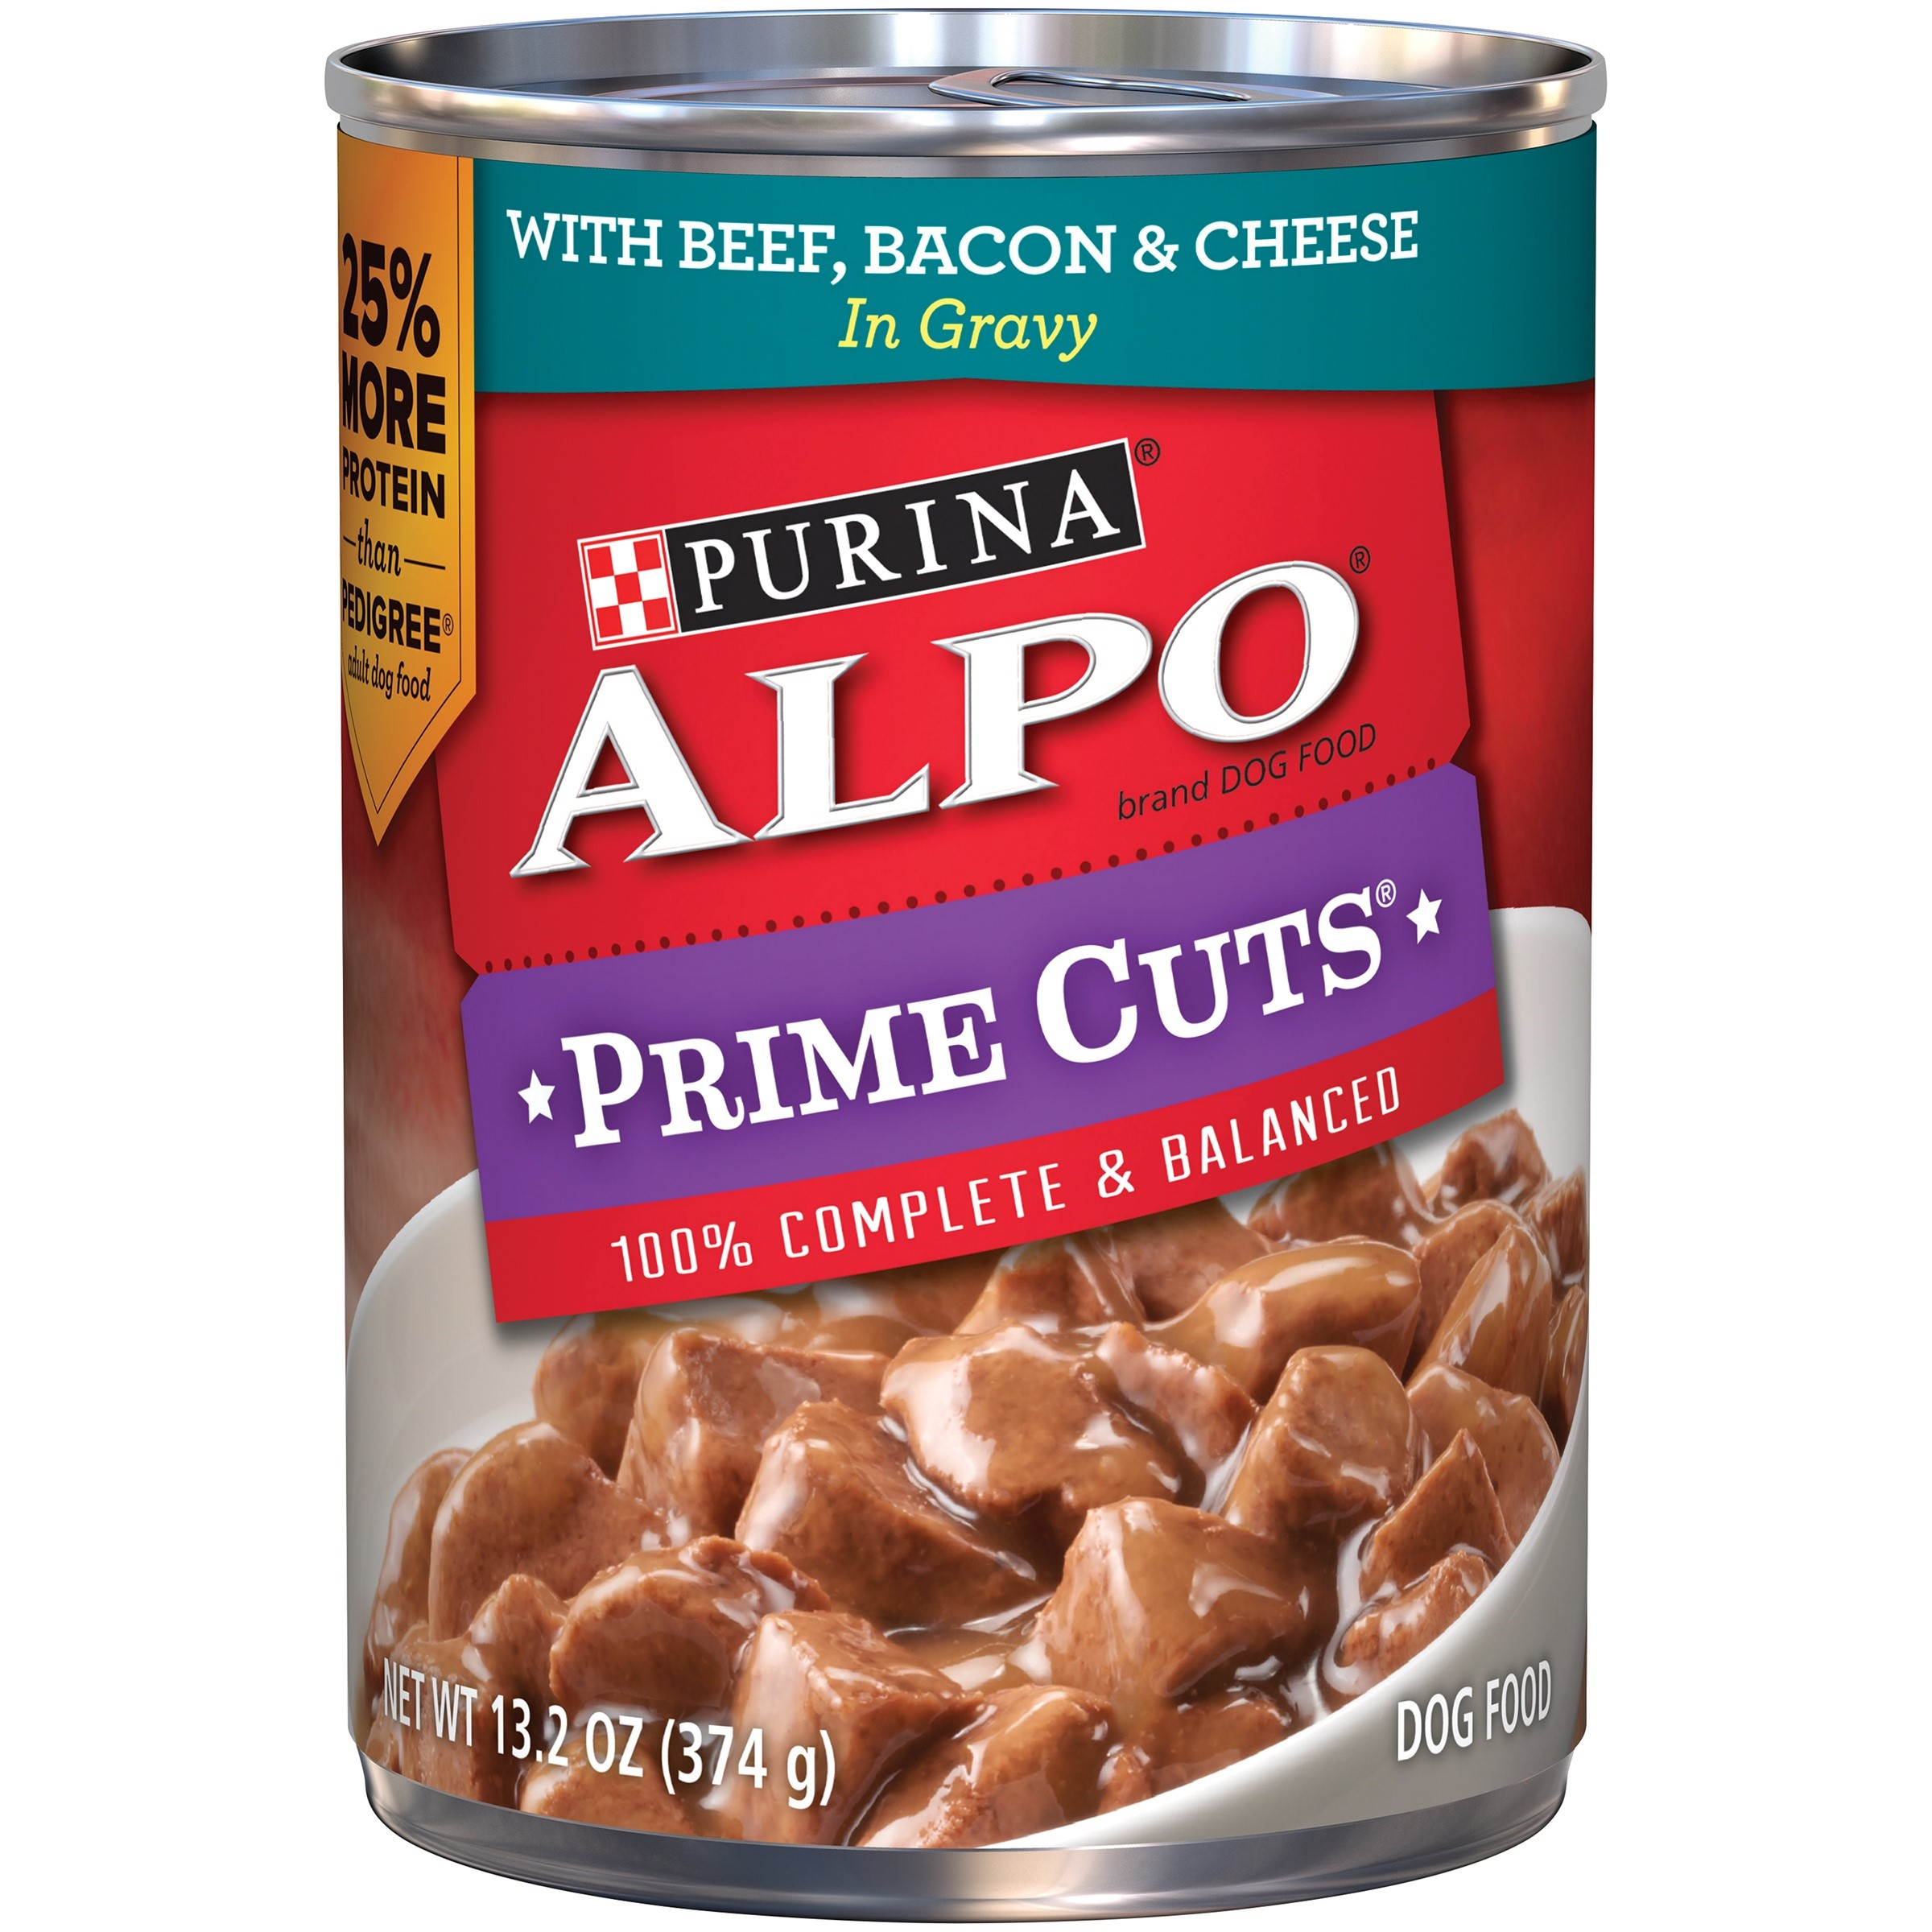 Purina Alpo Prime Cuts Beef, Bacon & Cheese in Gravy Wet Dog Food, 13.2 Oz.